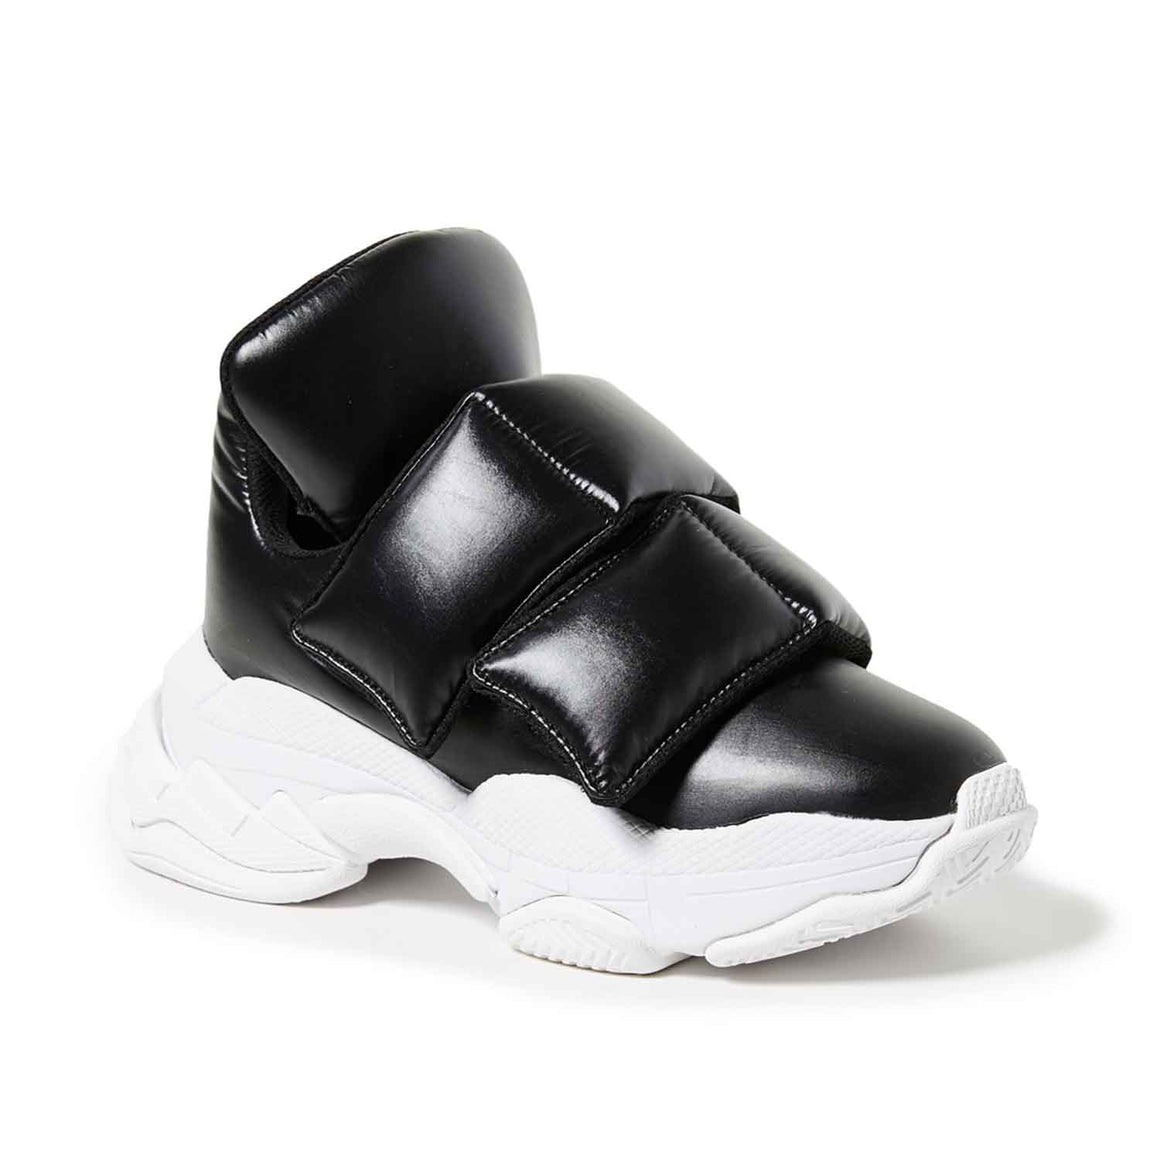 JEFFREY CAMPBELL Retina Velcro Sneakers Black